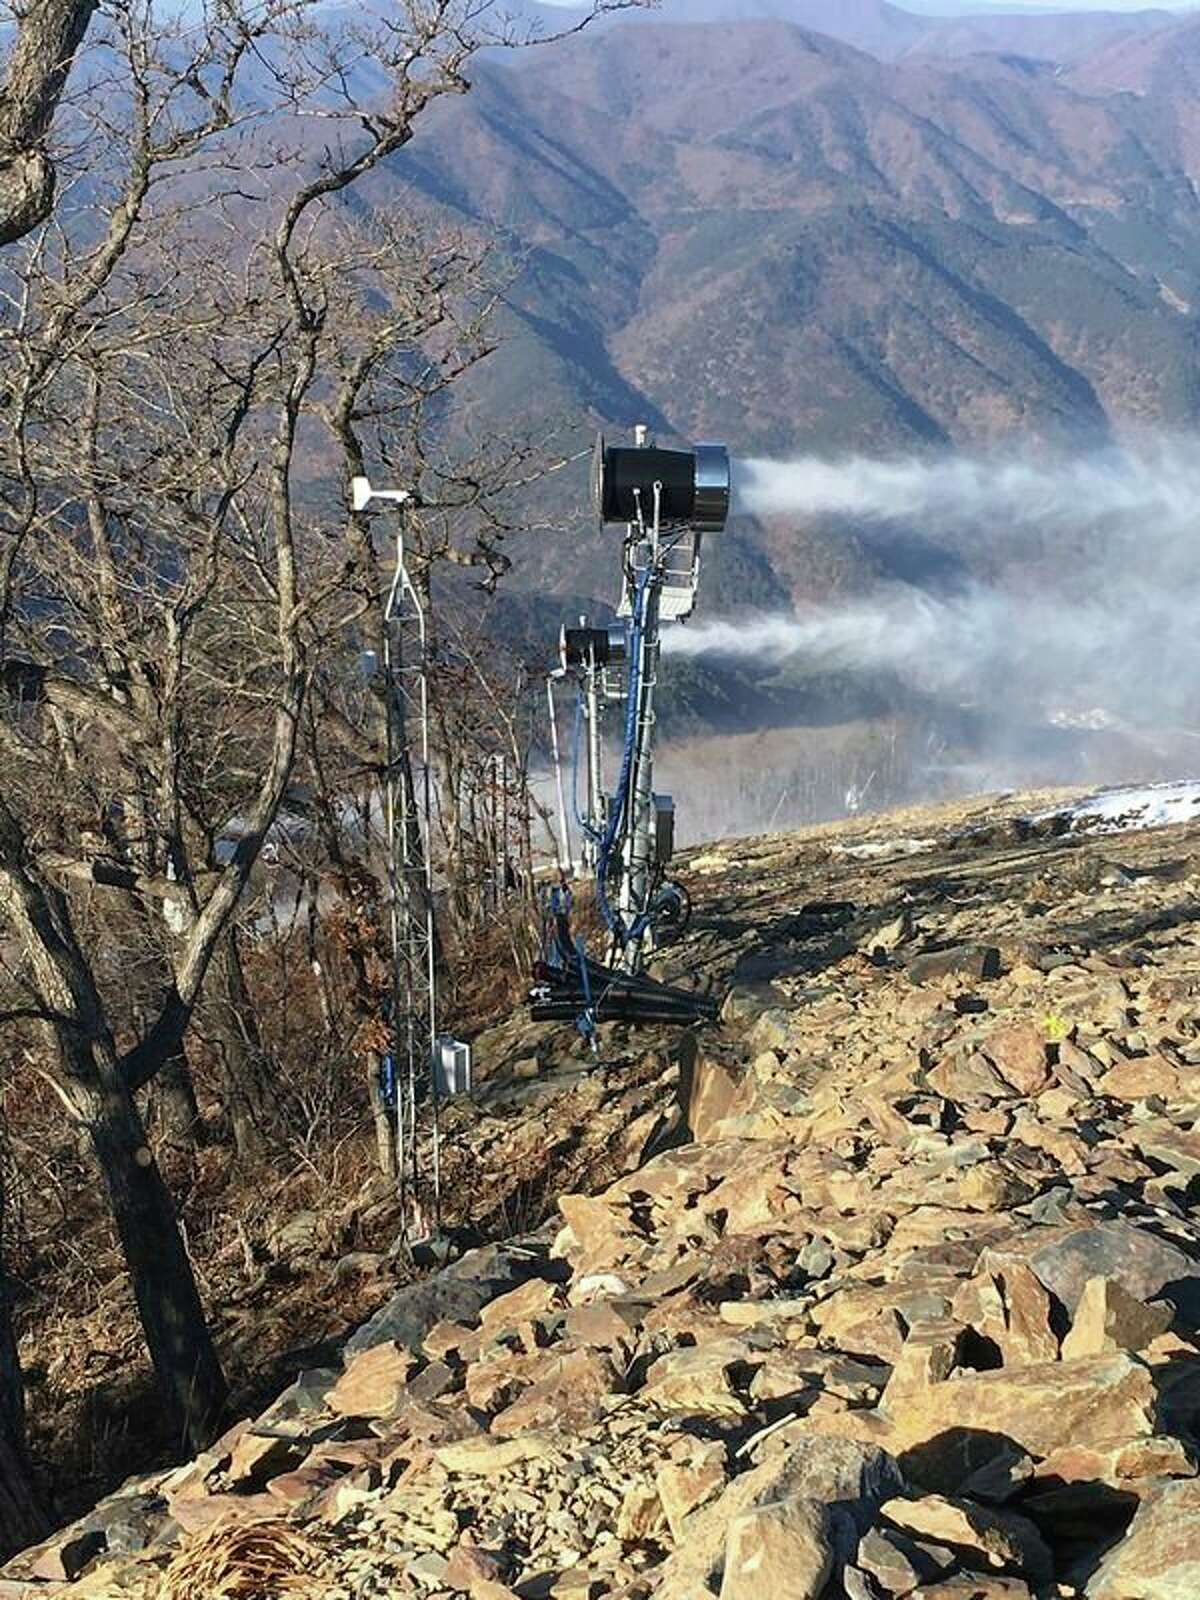 Equipment from SMI Snow Makers in Midland manufactures snow for the Jeongseon Alpine Centre, the site of Alpine skiiing and snowboarding at the 2018 Winter Olympics in South Korea. (Photo provided by SMI Snow Makers)